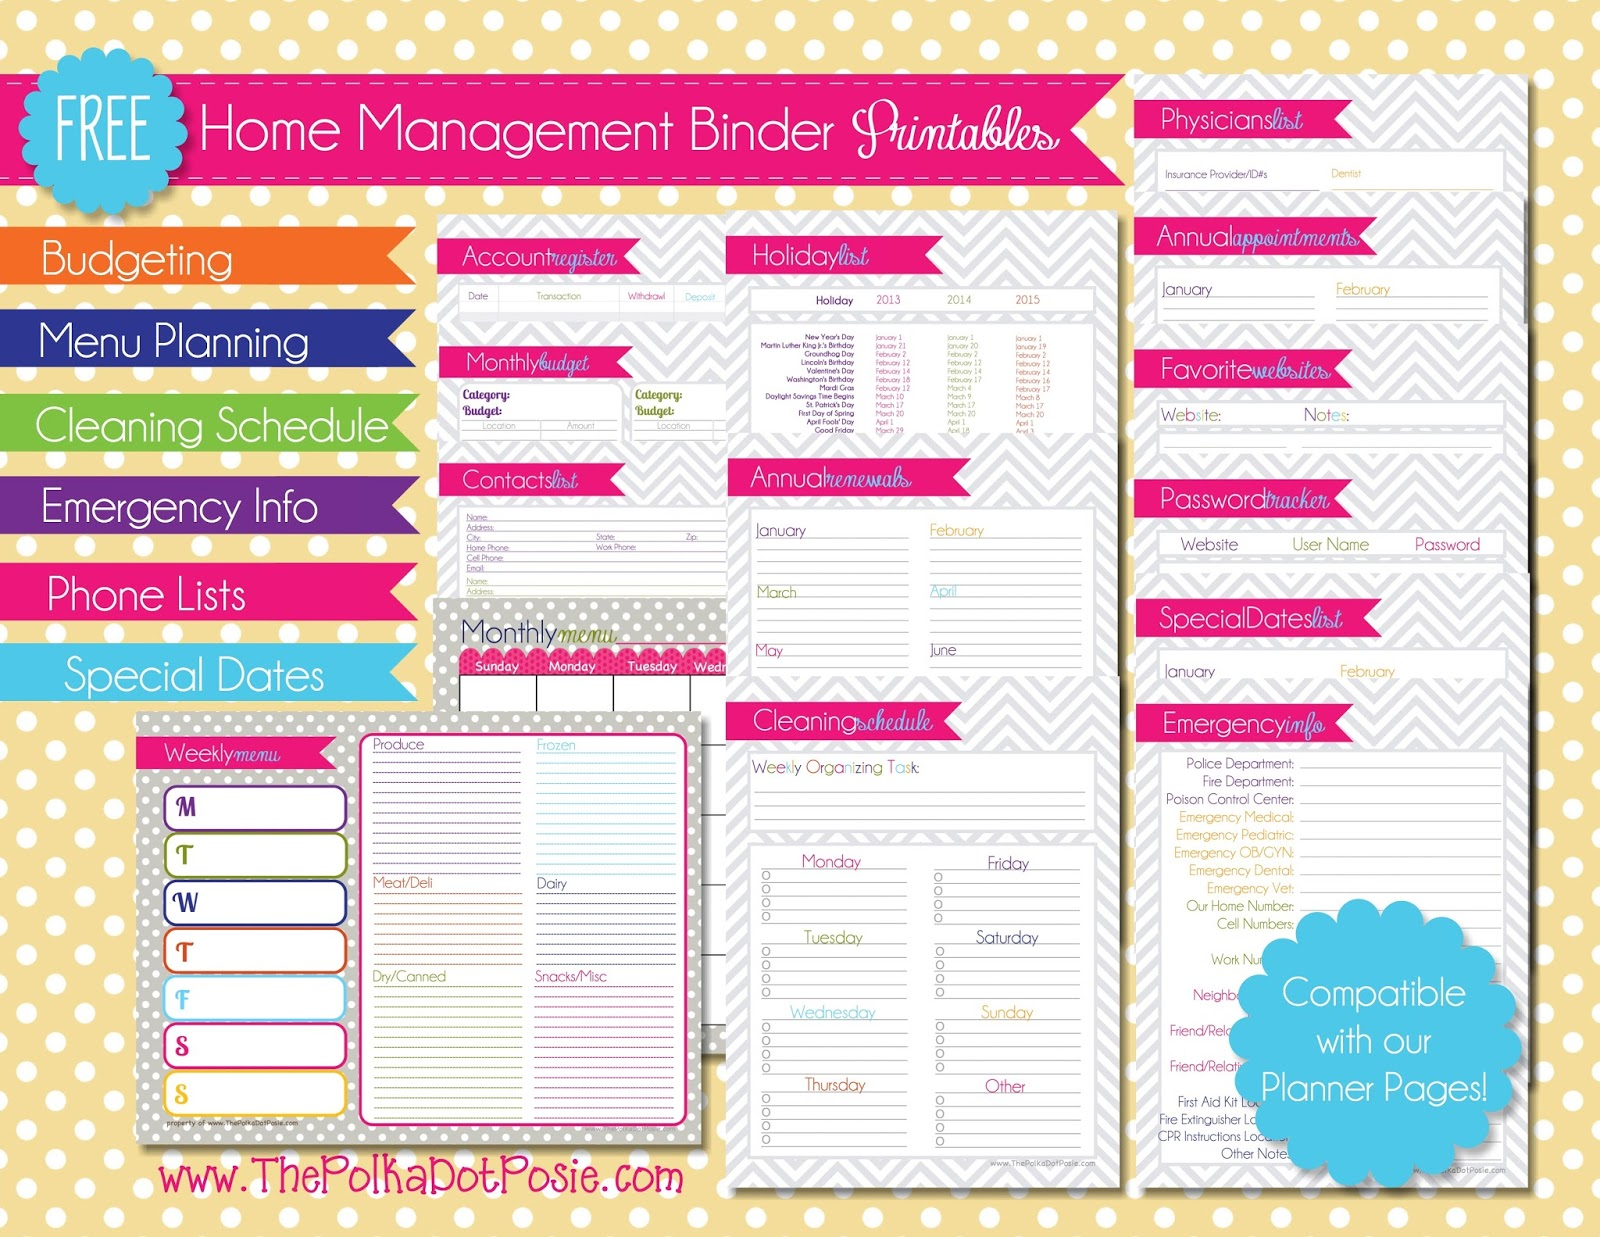 6 Images of Free Printable Household Planner